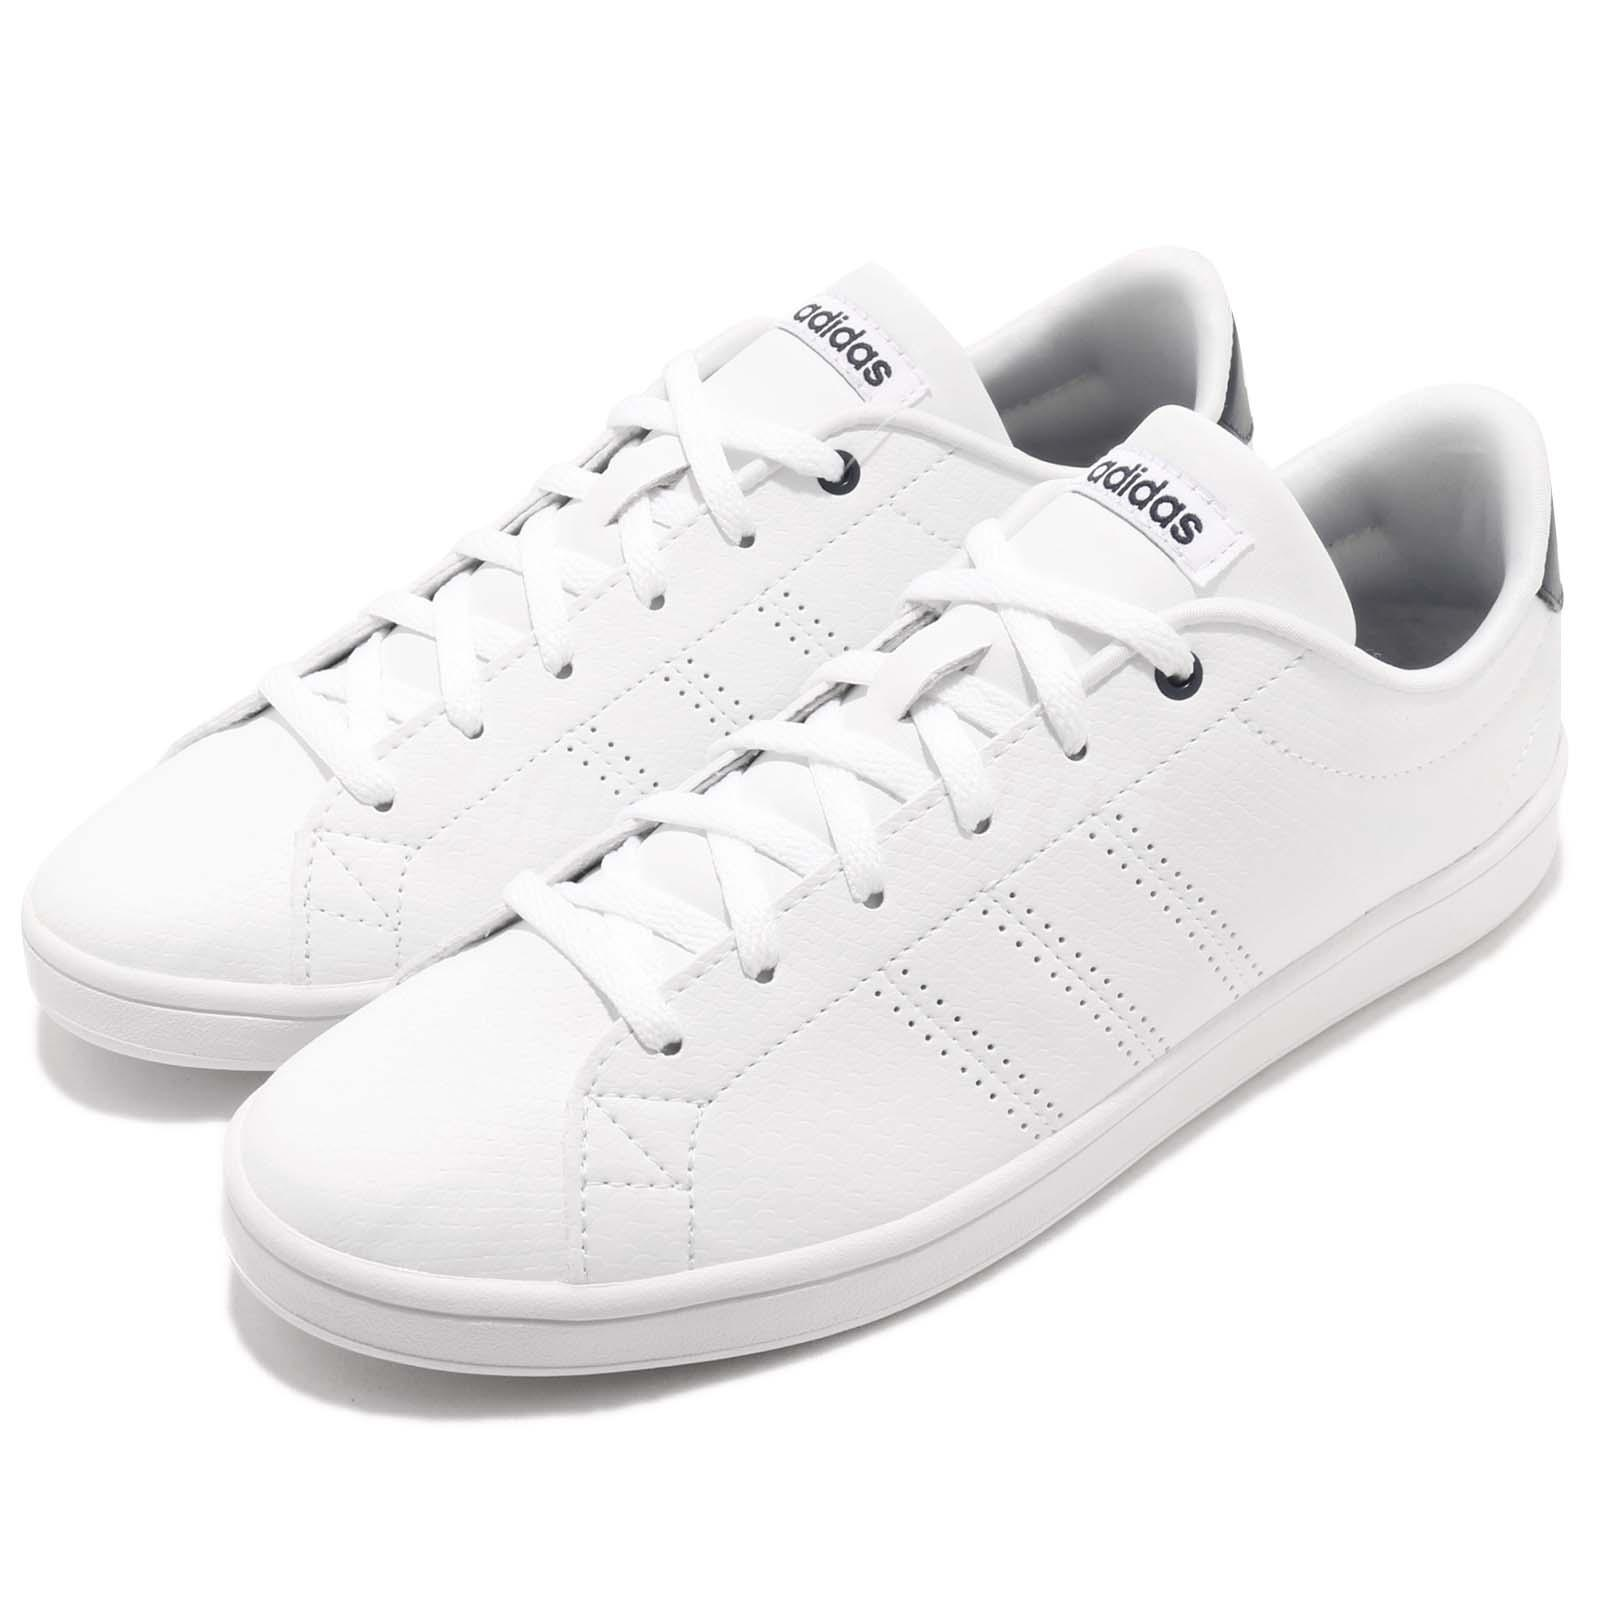 sports shoes e91f2 4dae3 Details about adidas Neo Advantage Clean QT Footwear White Navy Women  Casual Shoes DB1853